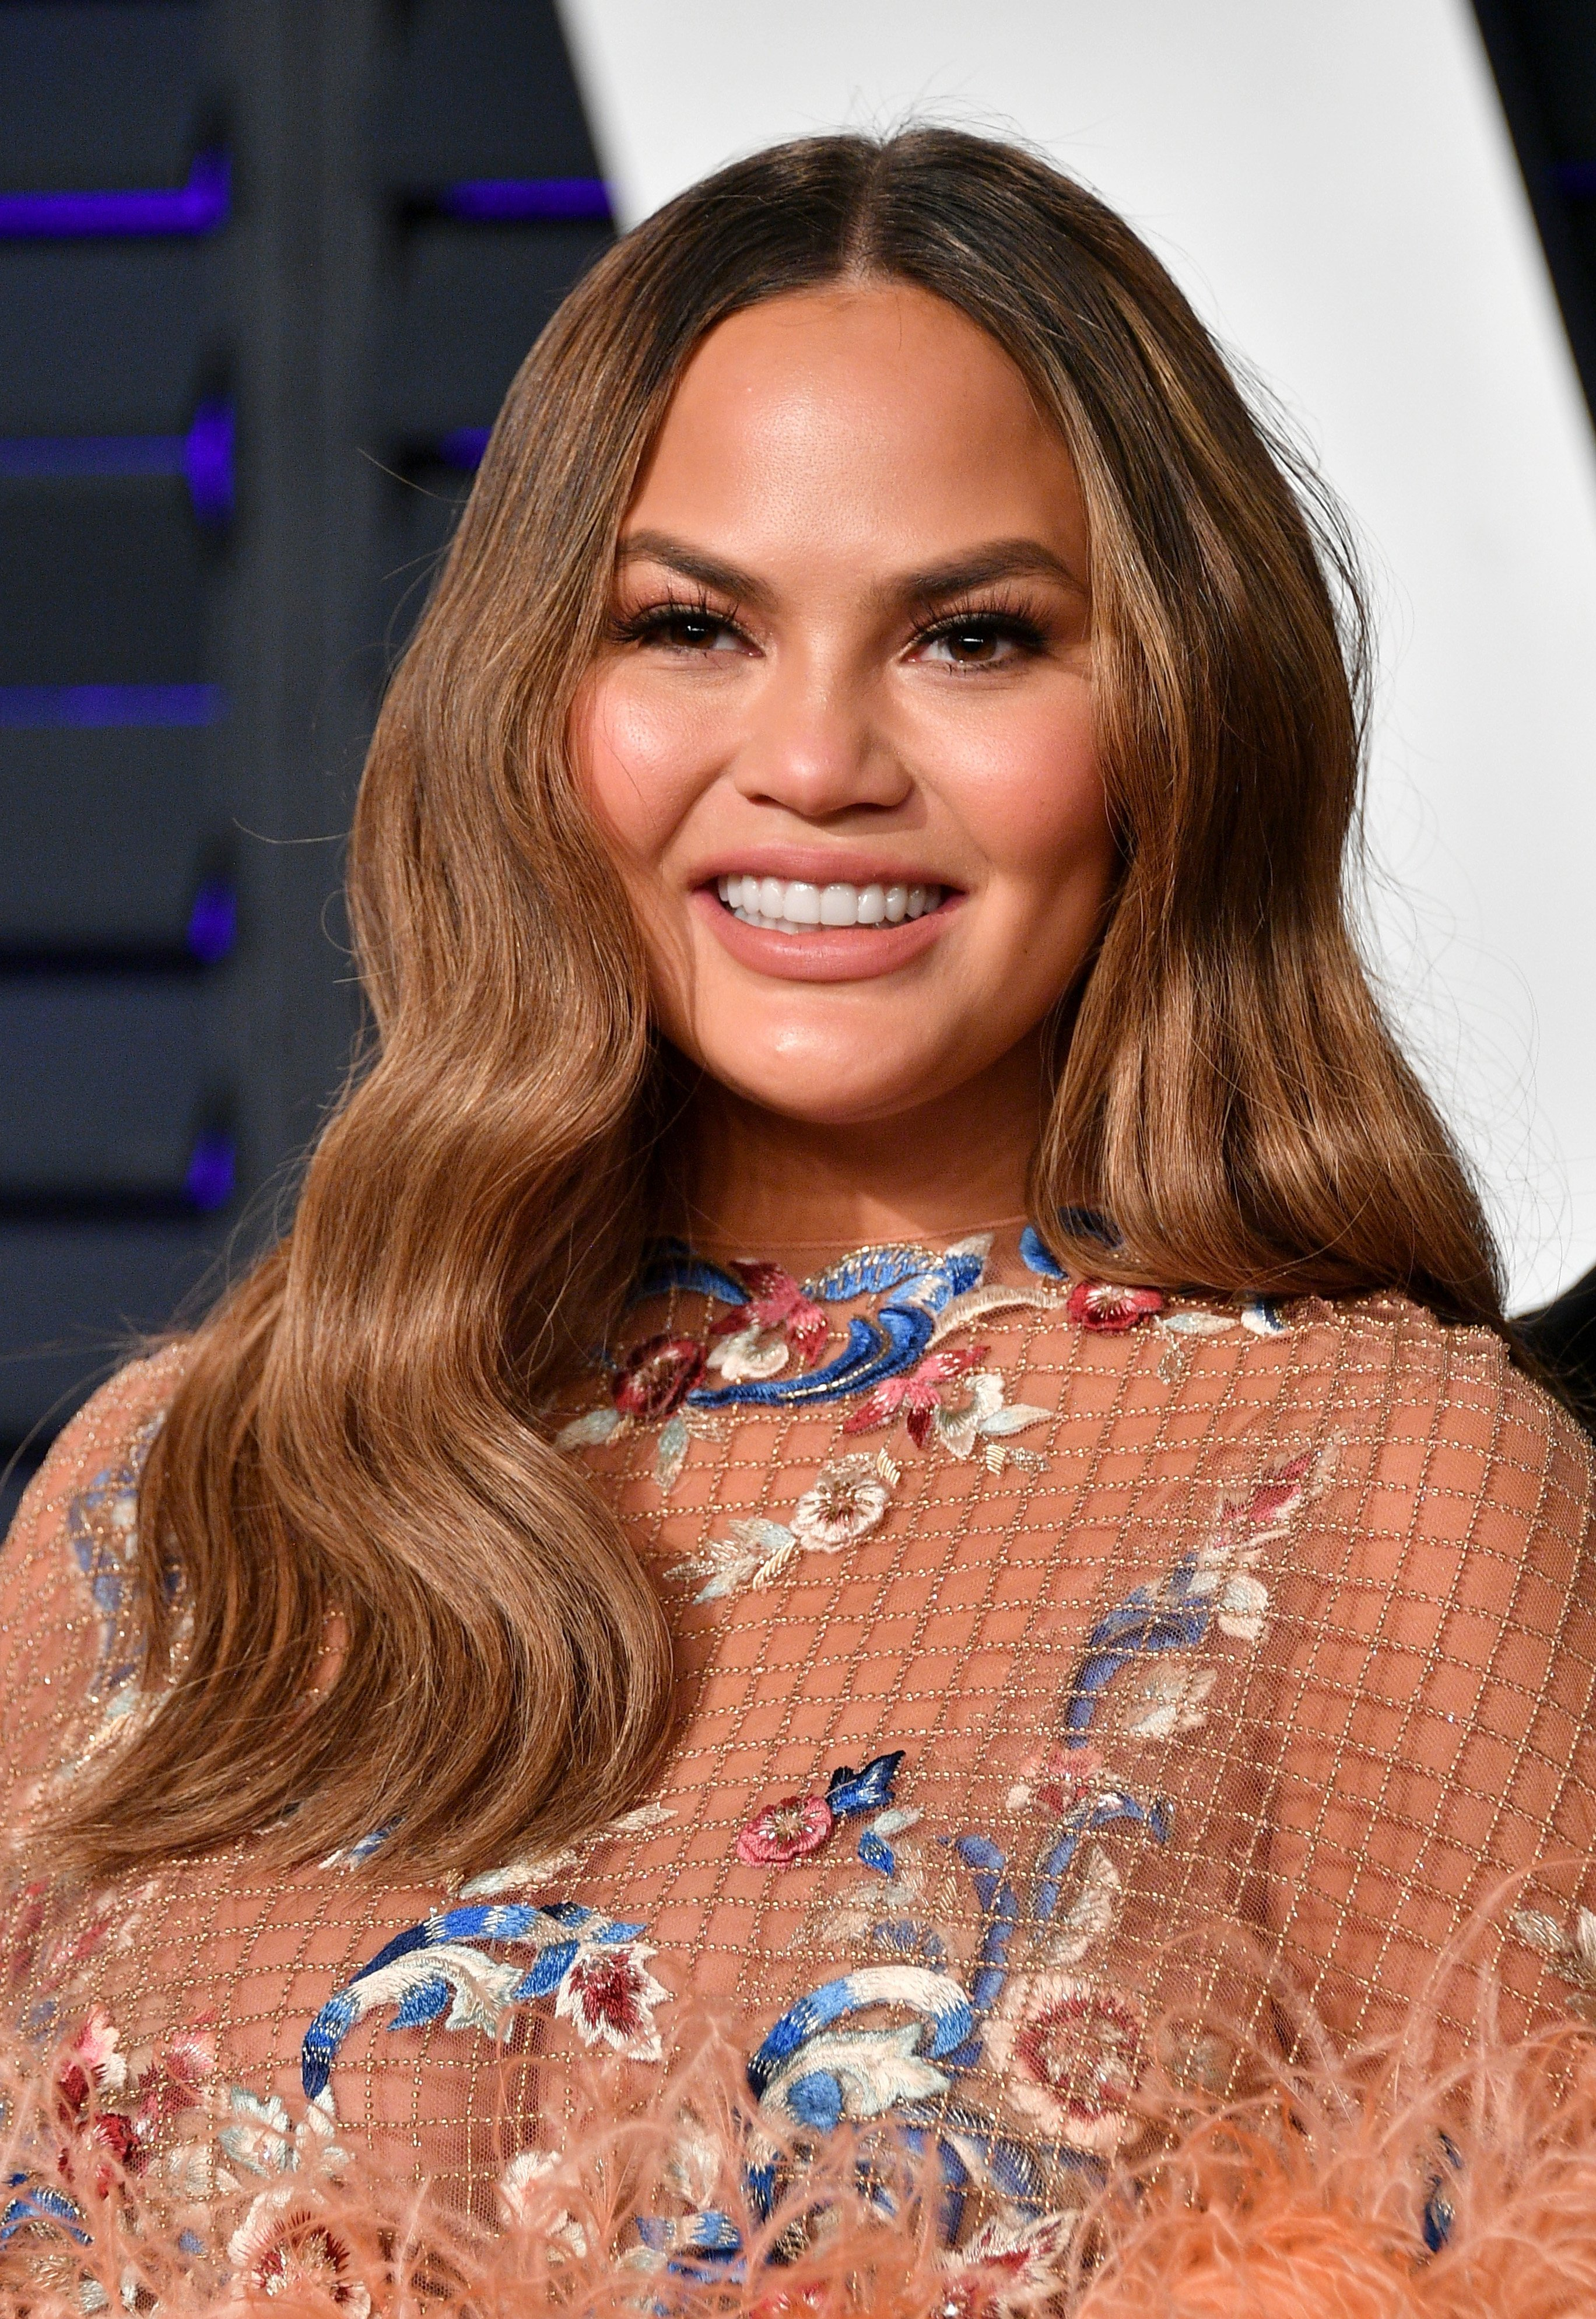 Chrissy Teigen makes room for new award by removing John Legend's Grammys from living room